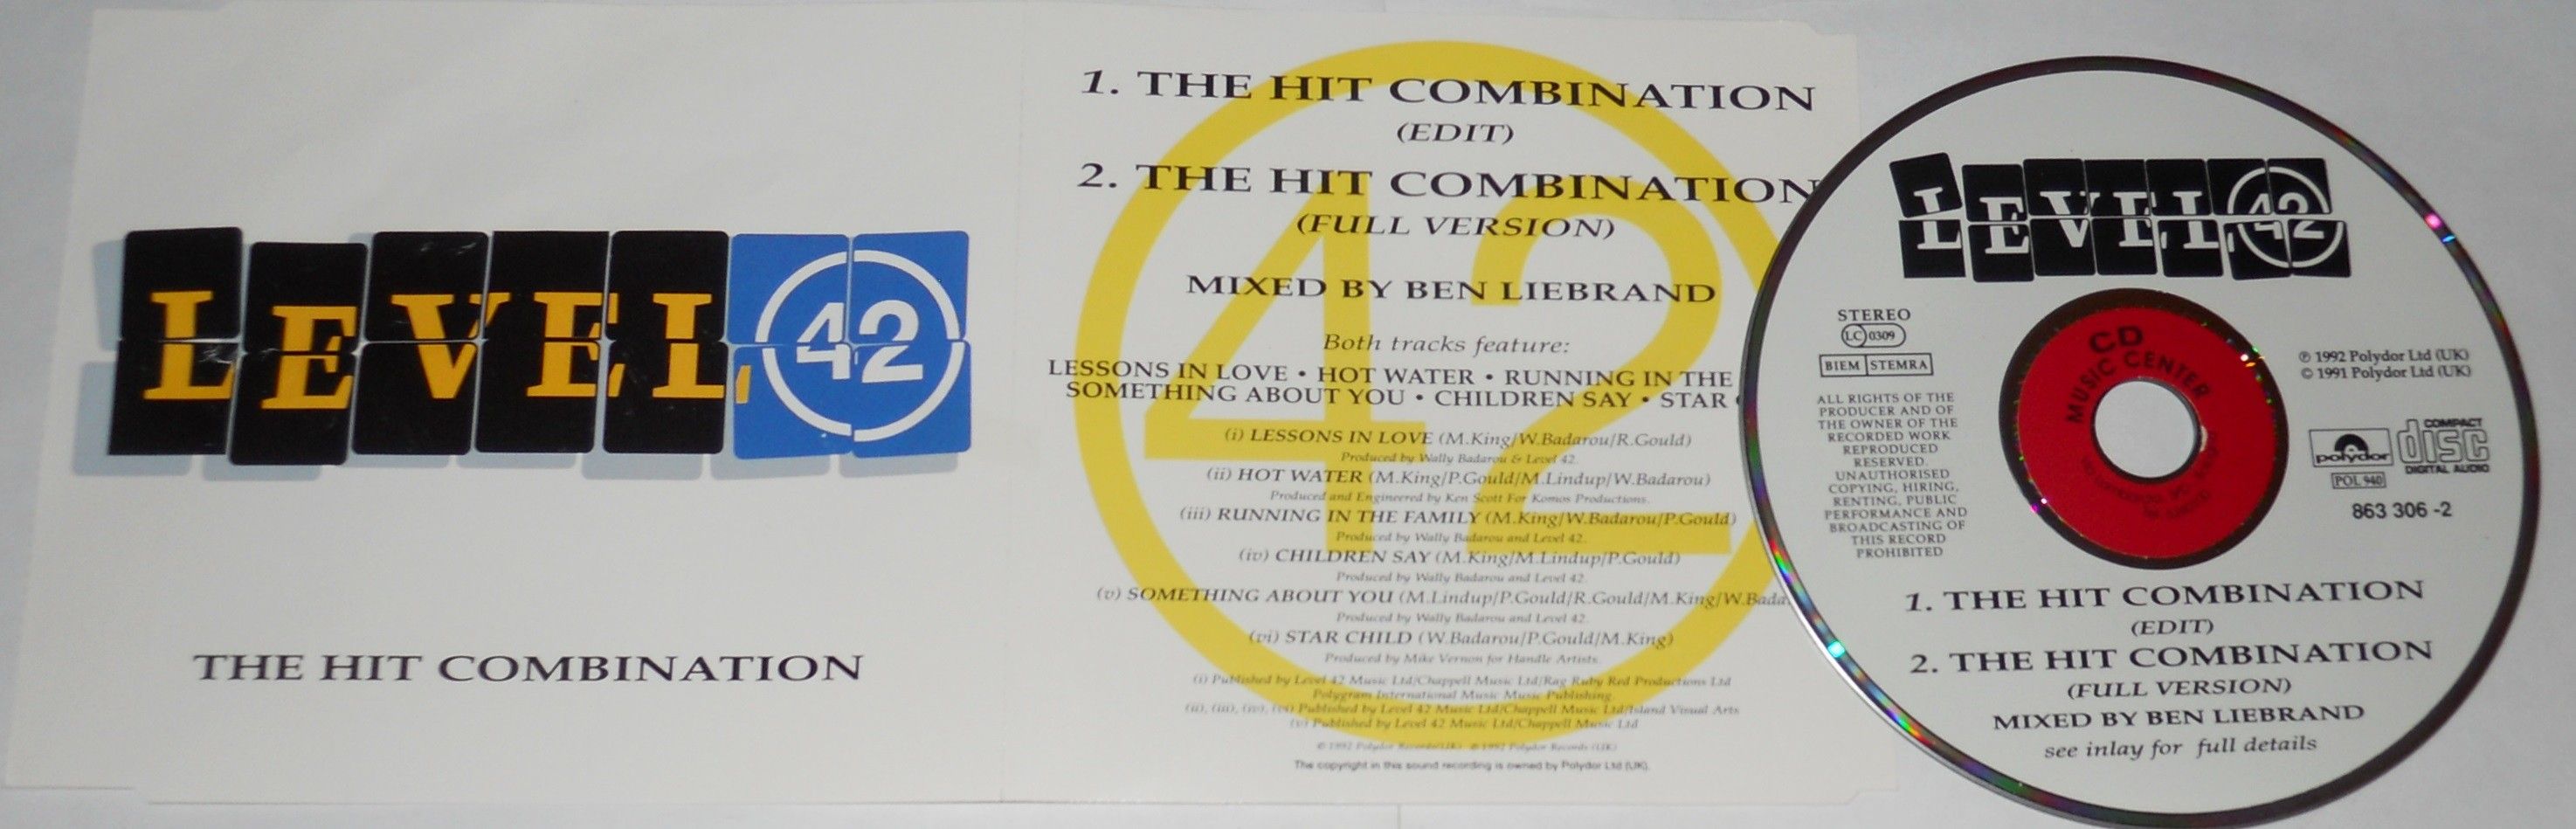 the hit combination